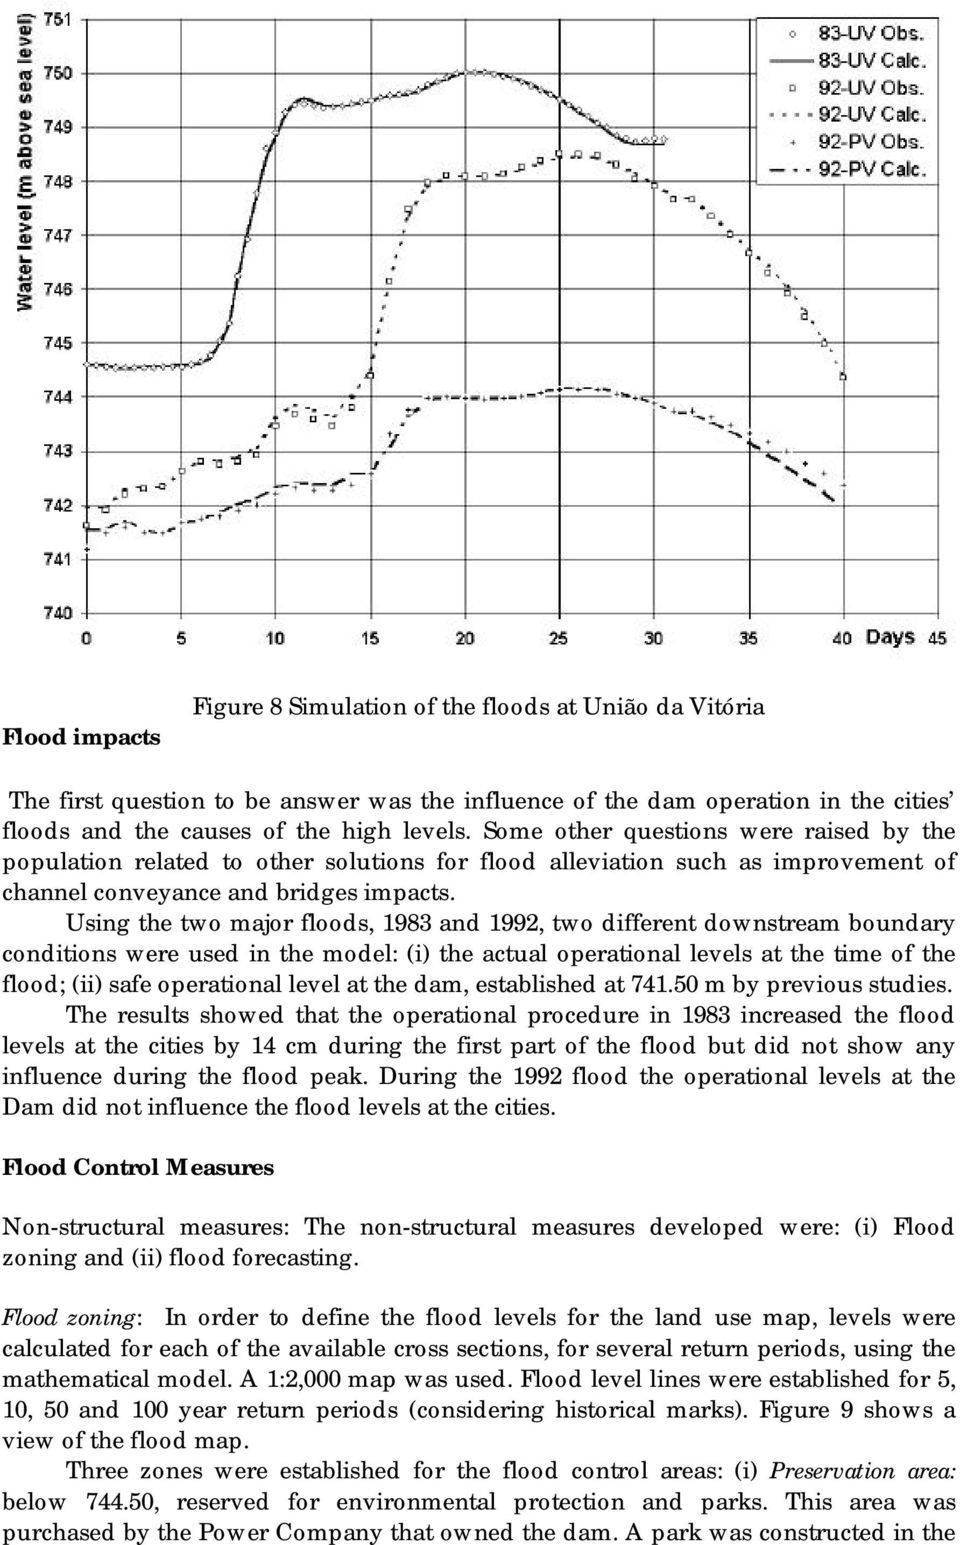 Using the two major floods, 1983 and 1992, two different downstream boundary conditions were used in the model: (i) the actual operational levels at the time of the flood; (ii) safe operational level